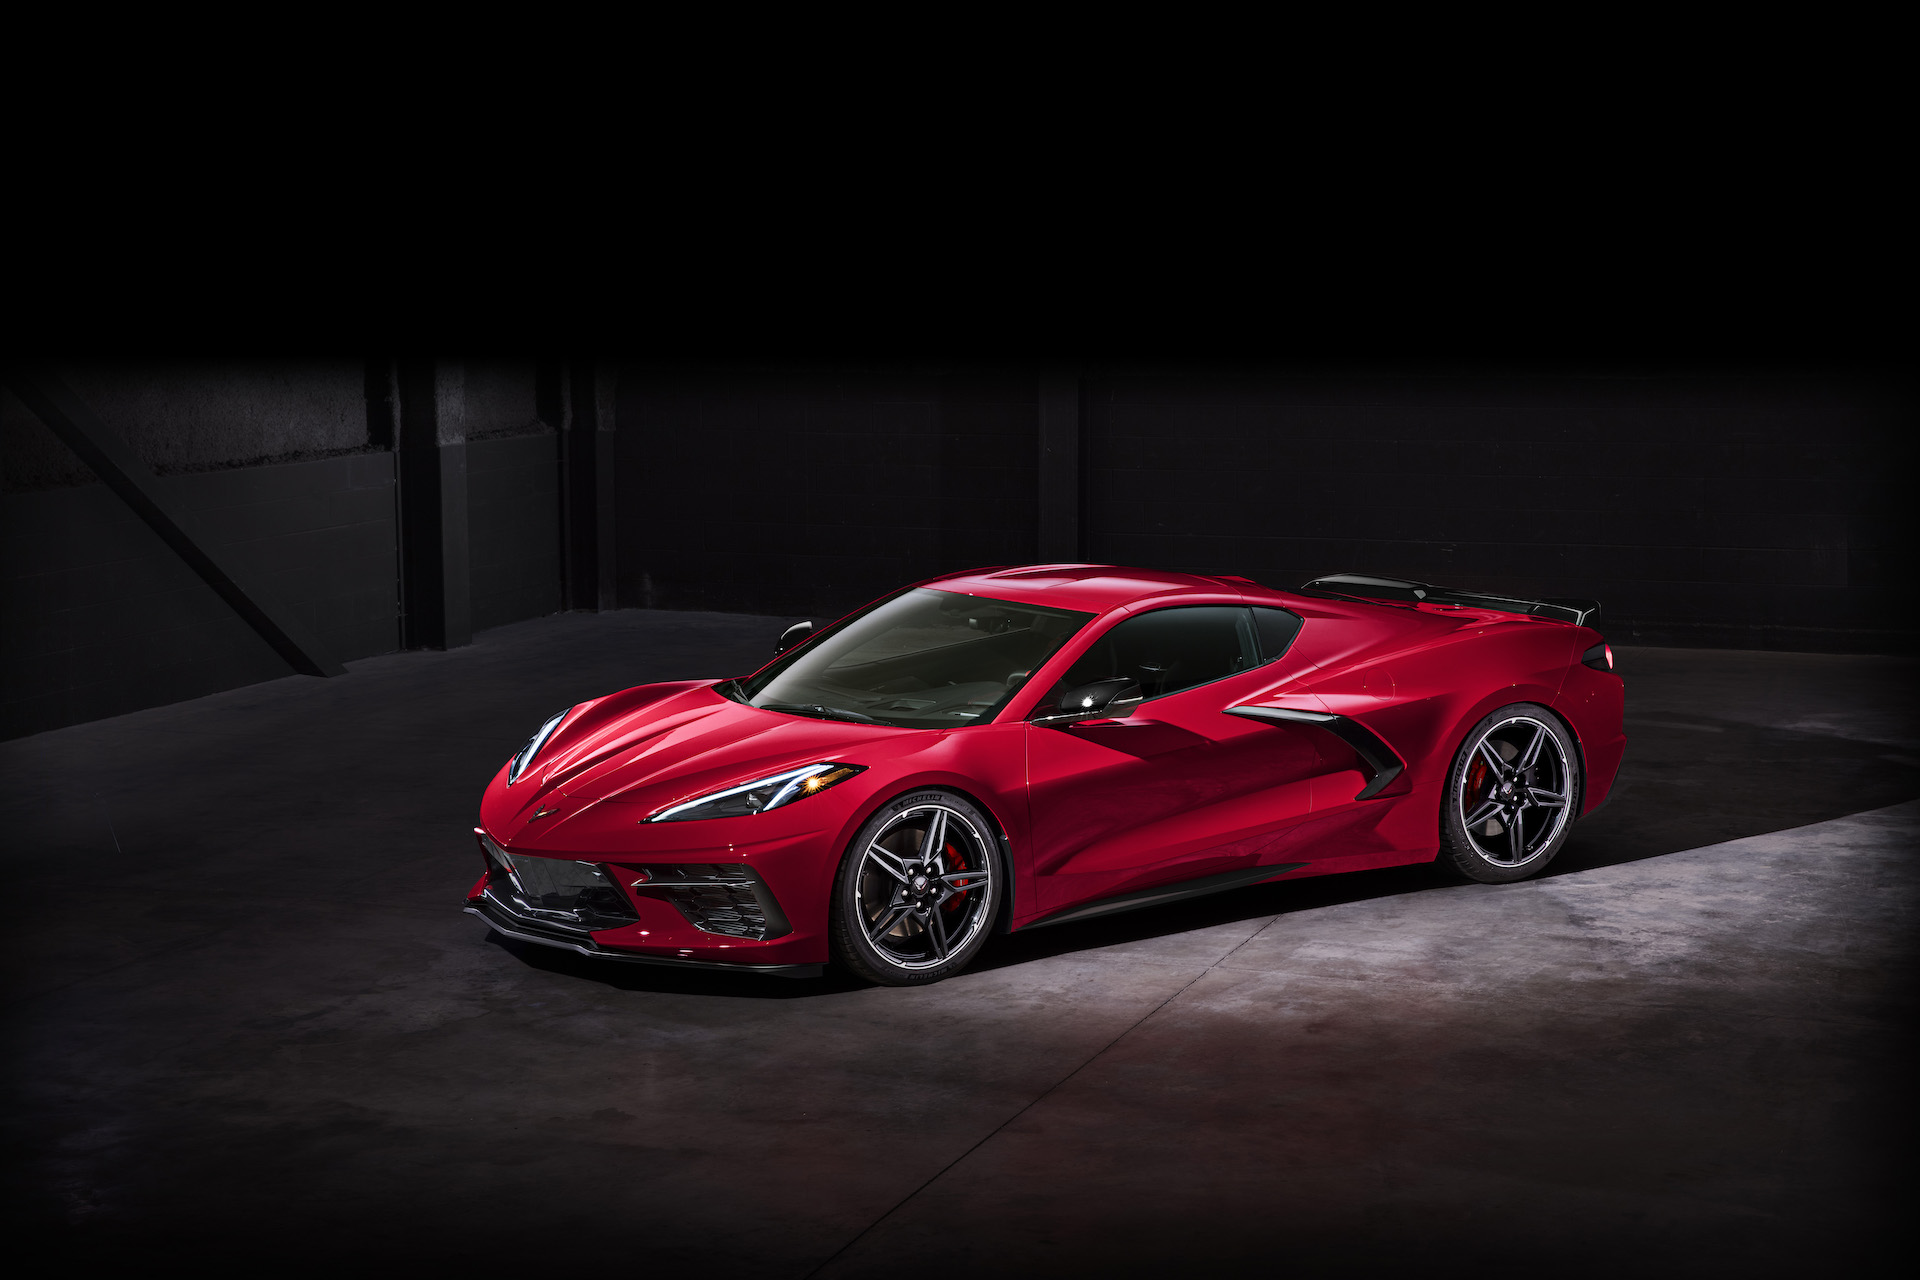 New 2020 Corvette has a trick to rev at stoplights, if ...